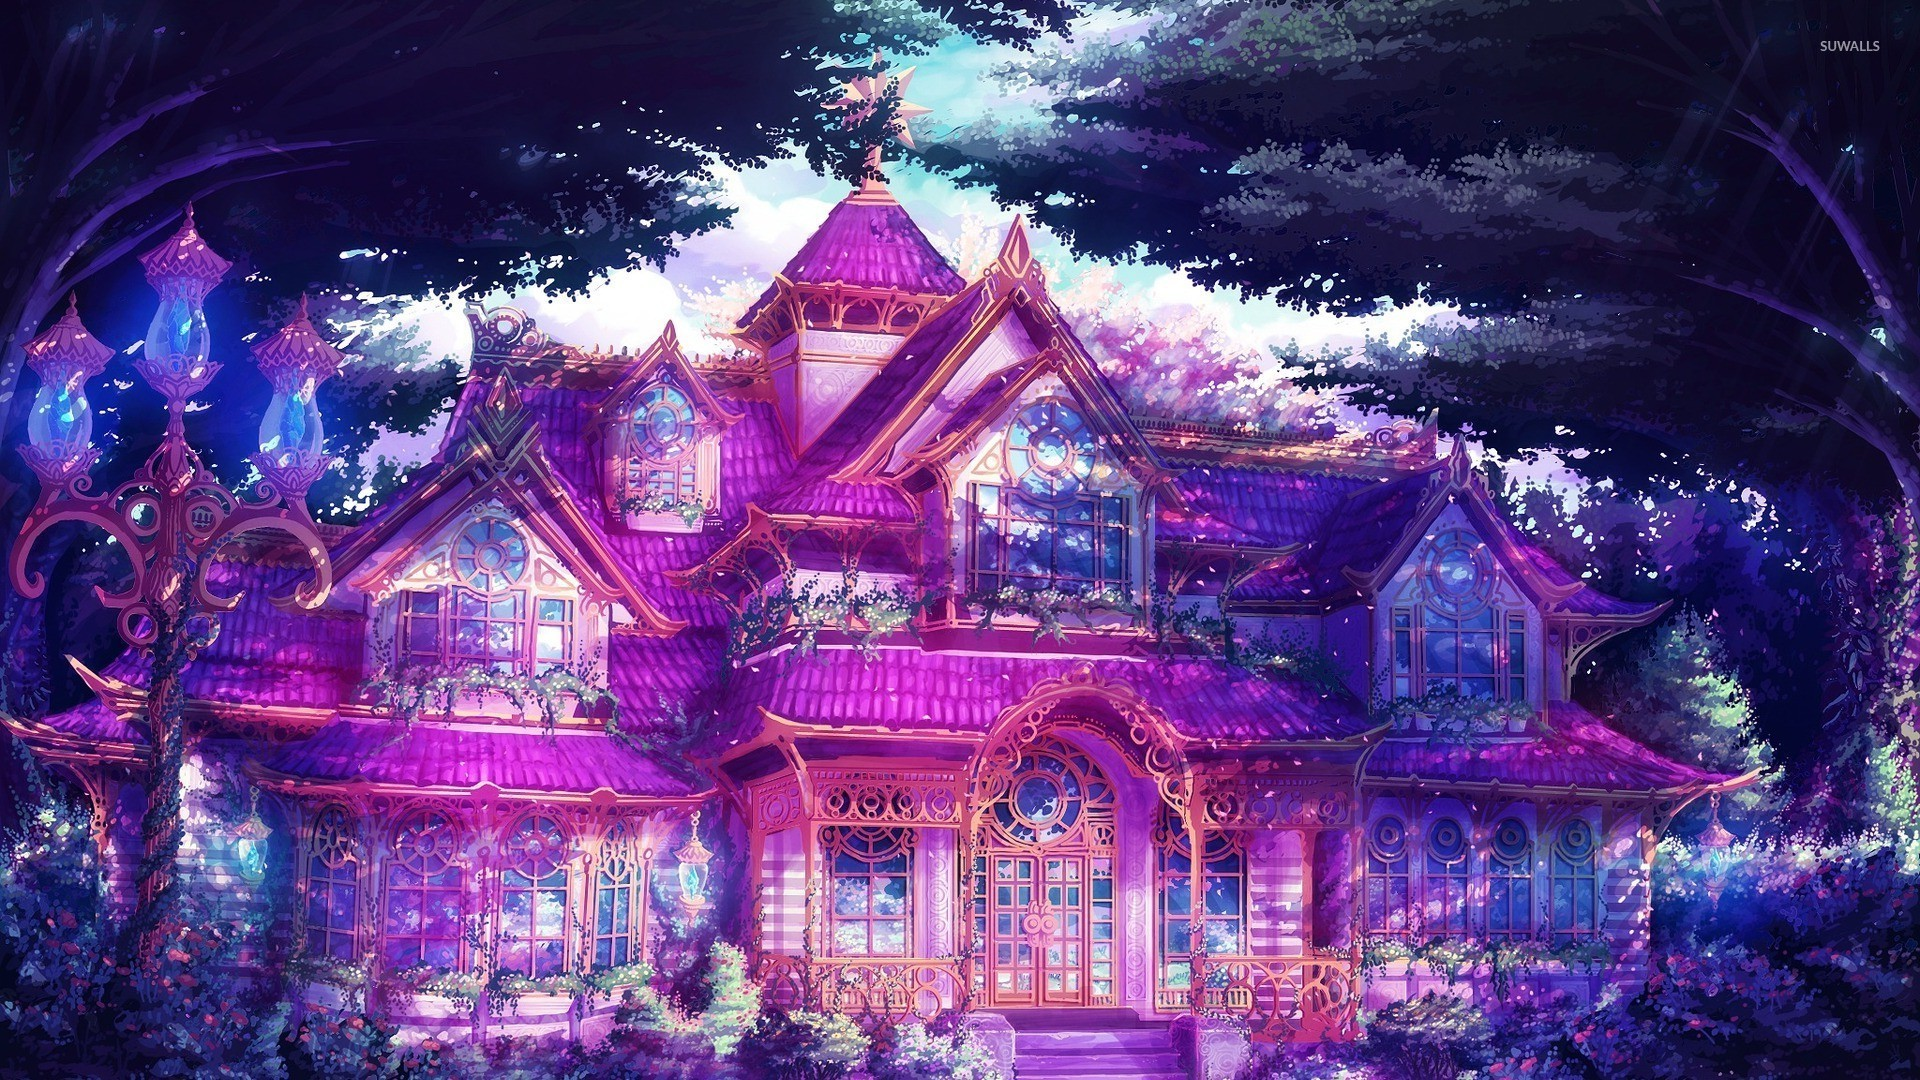 Traditional japanese house bedroom - Magical Mansion In The Forest Wallpaper Digital Art Wallpapers